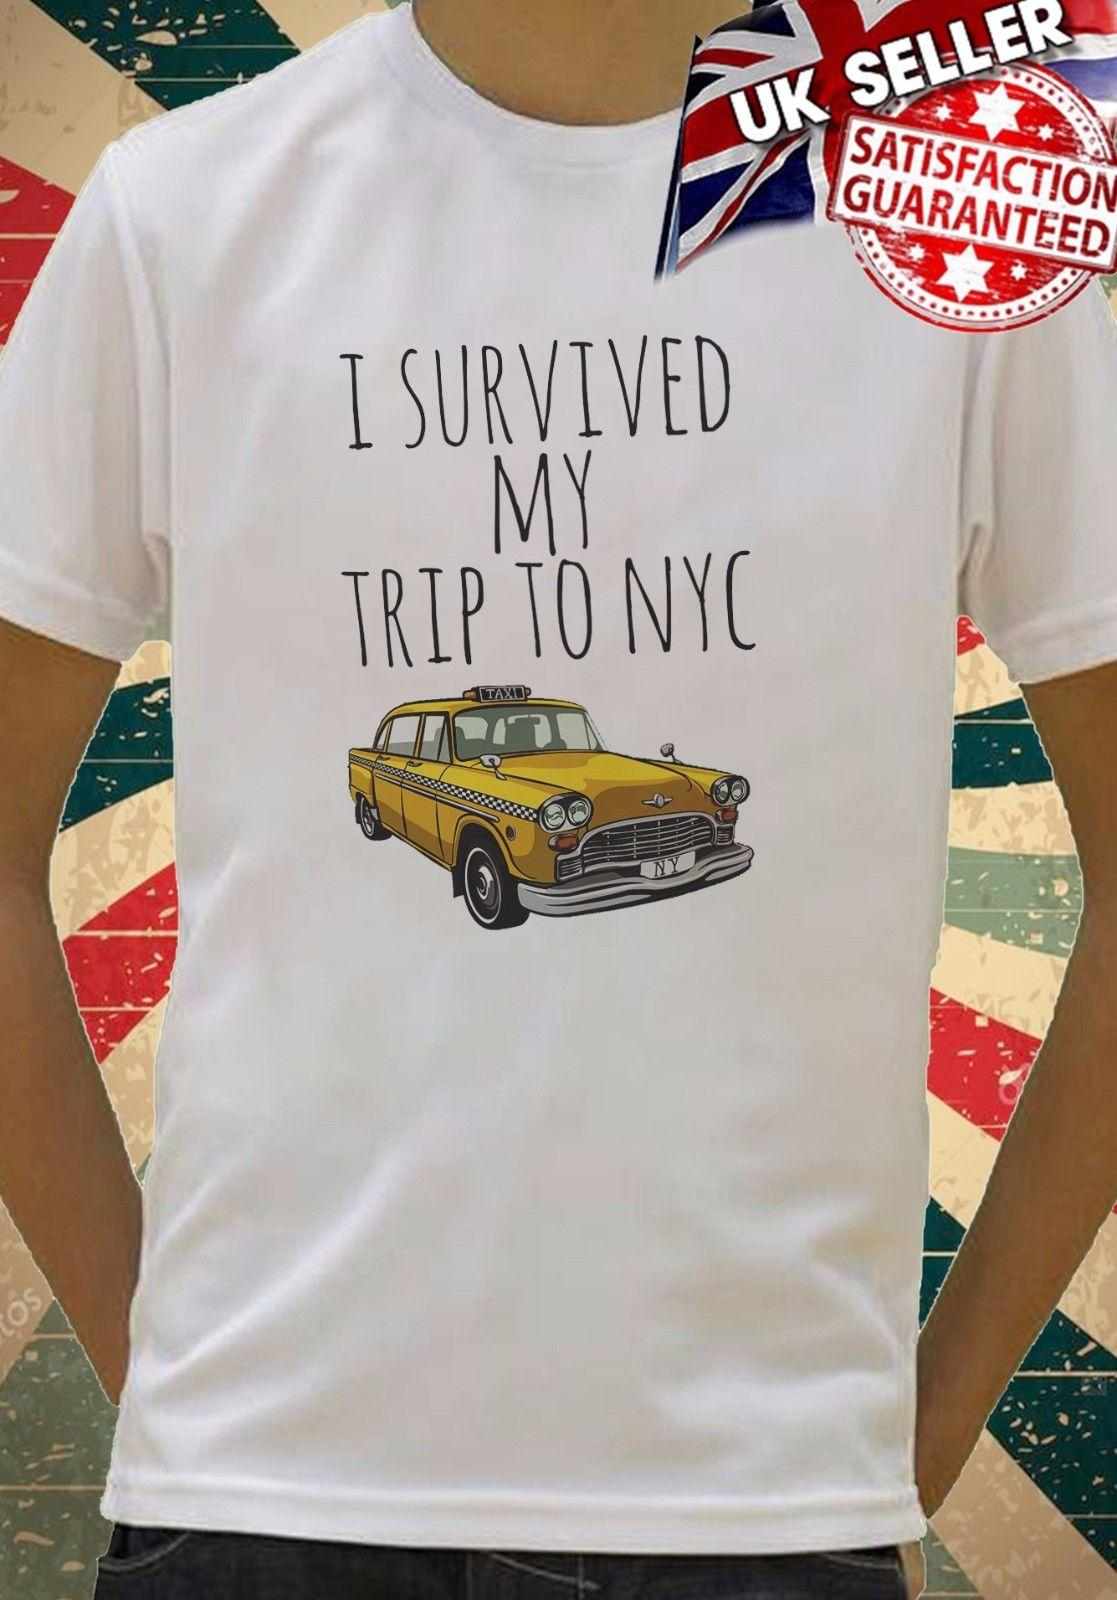 I Survived My Trip To NYC New York Cool Kids Boy Girls Unisex Top T Shirt  690 T Shirt With A T Shirt On It Best Deal On T Shirts From Mildeast c2da611e326